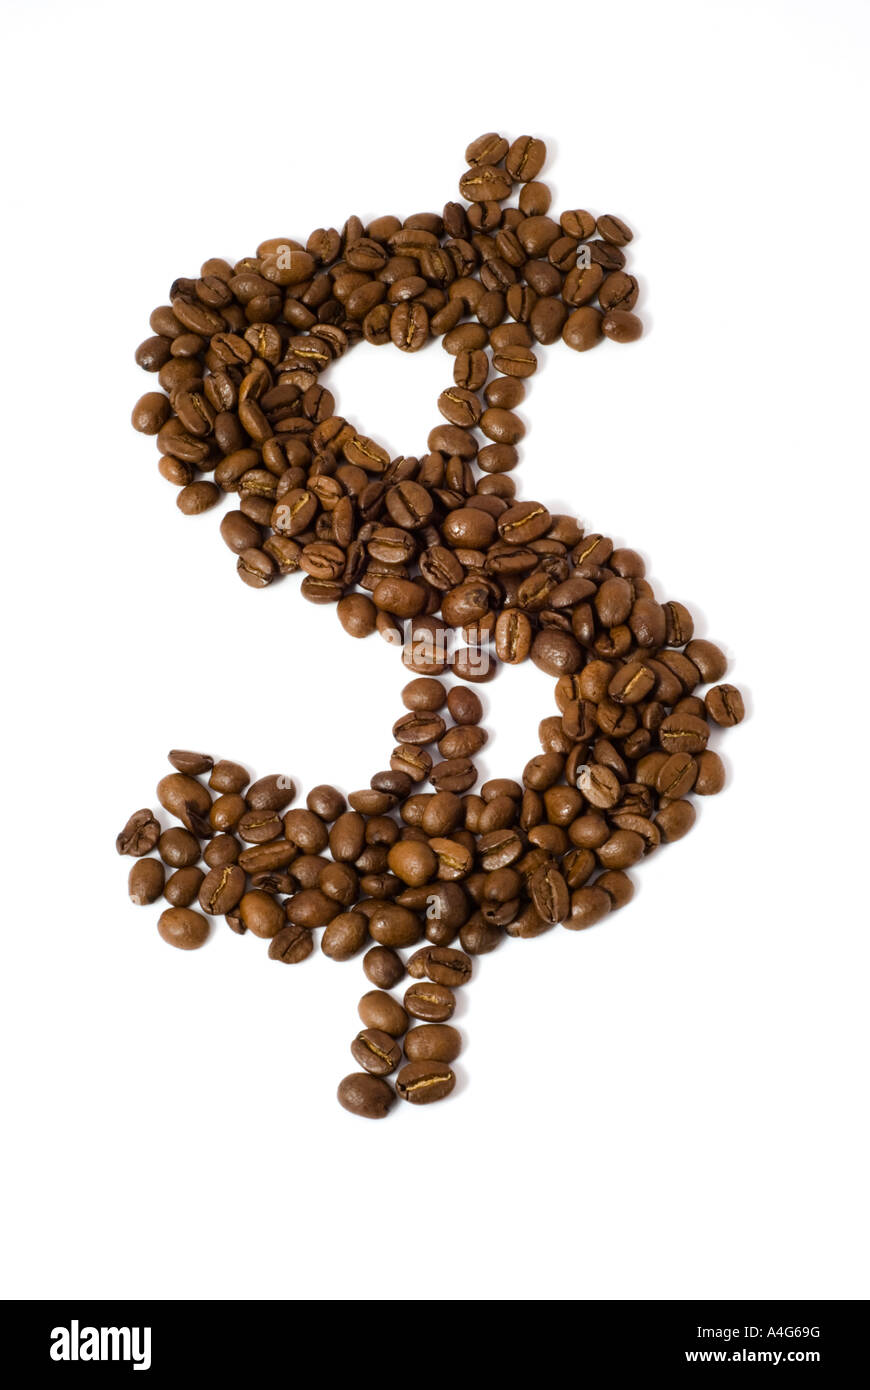 Coffee beans in the shape of a dollar sign isolated on white background with clipping path - Stock Image